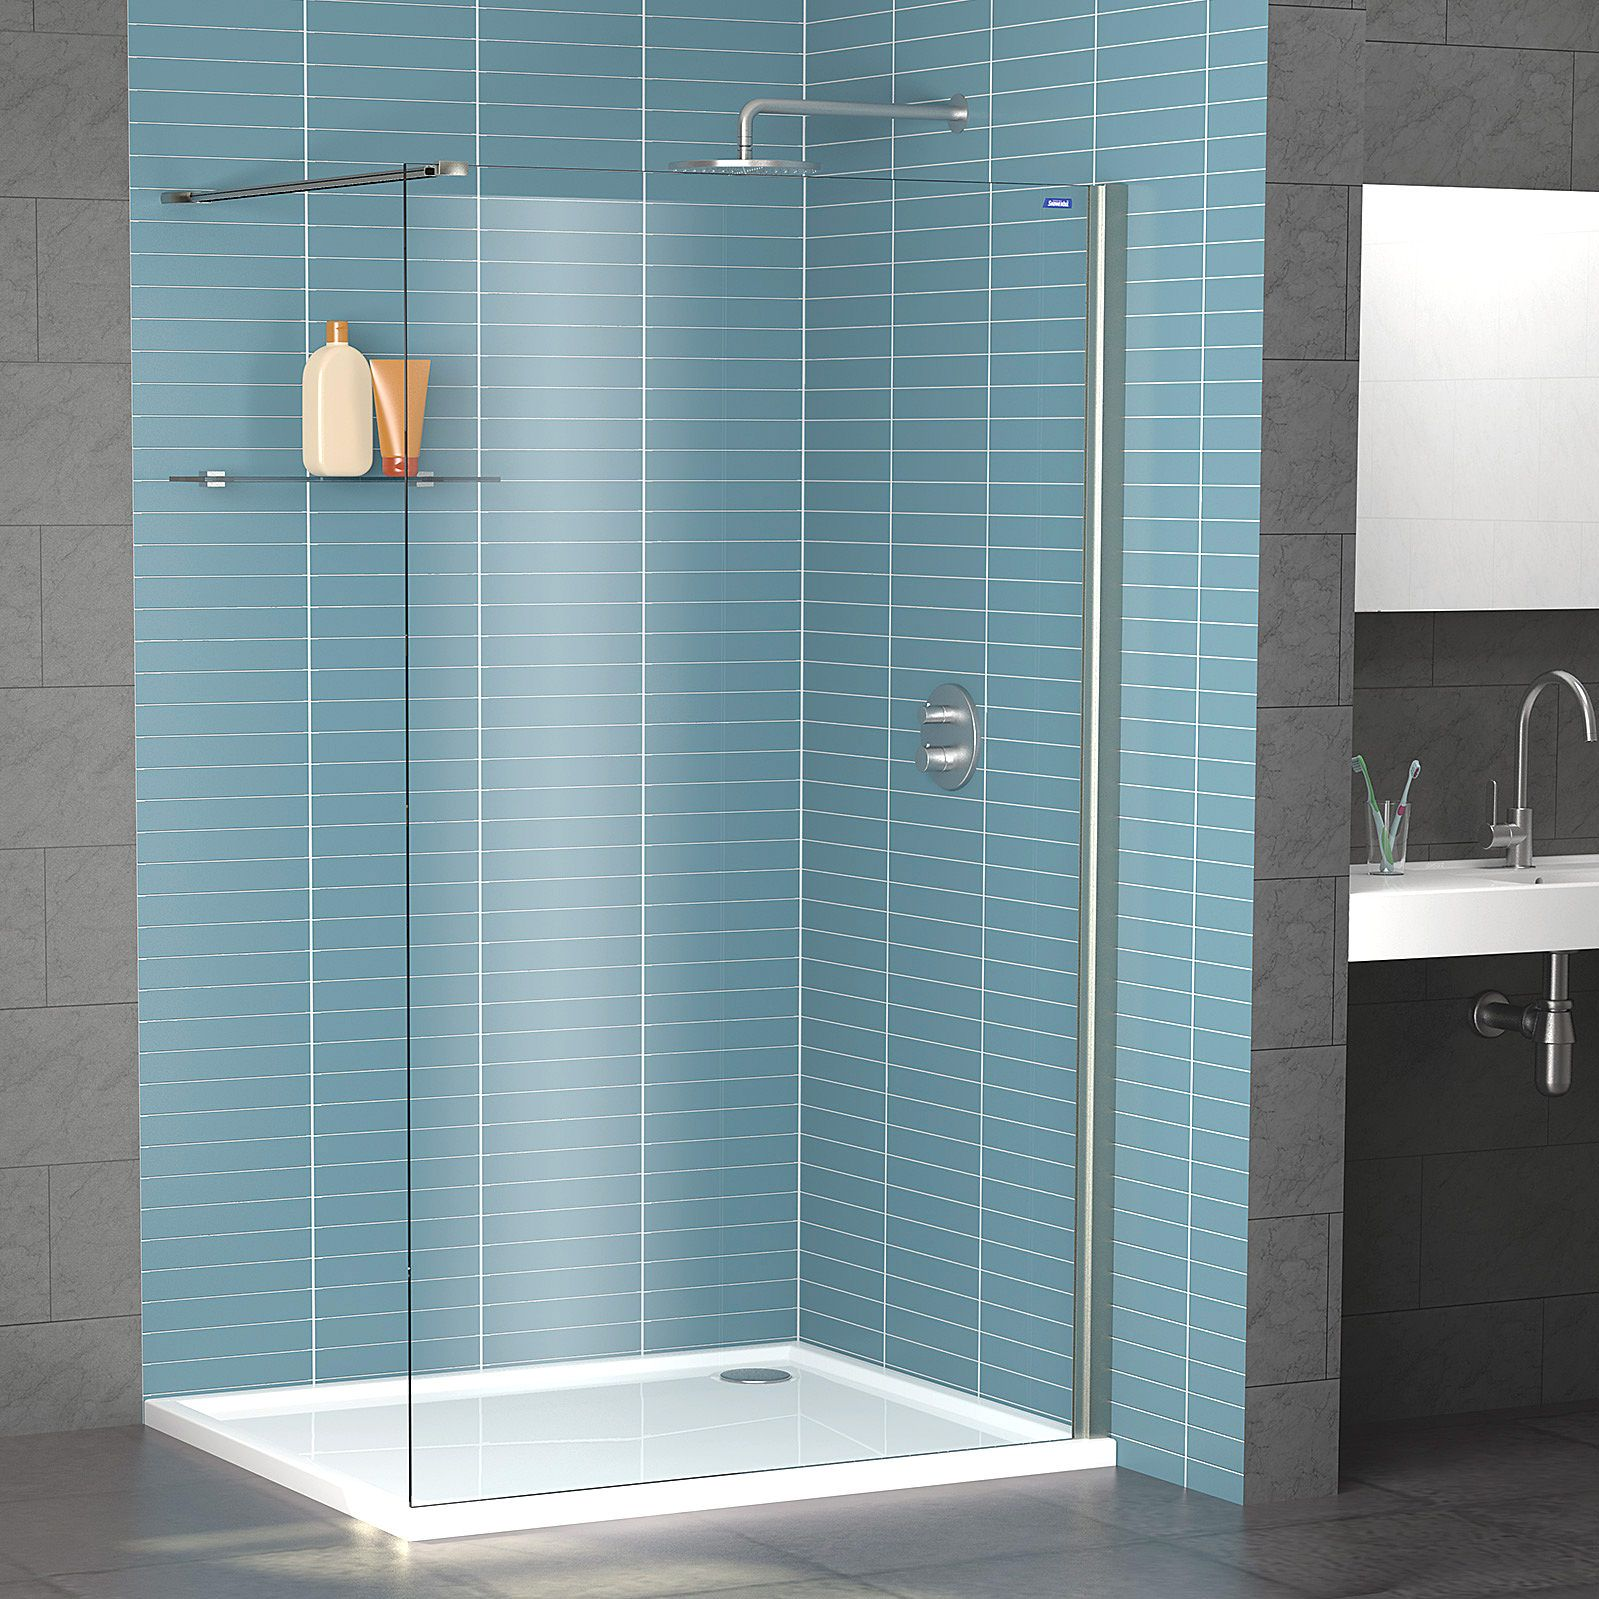 Showerlux Legacy Wetroom Panel 1400mm | Houses plans | Pinterest ...